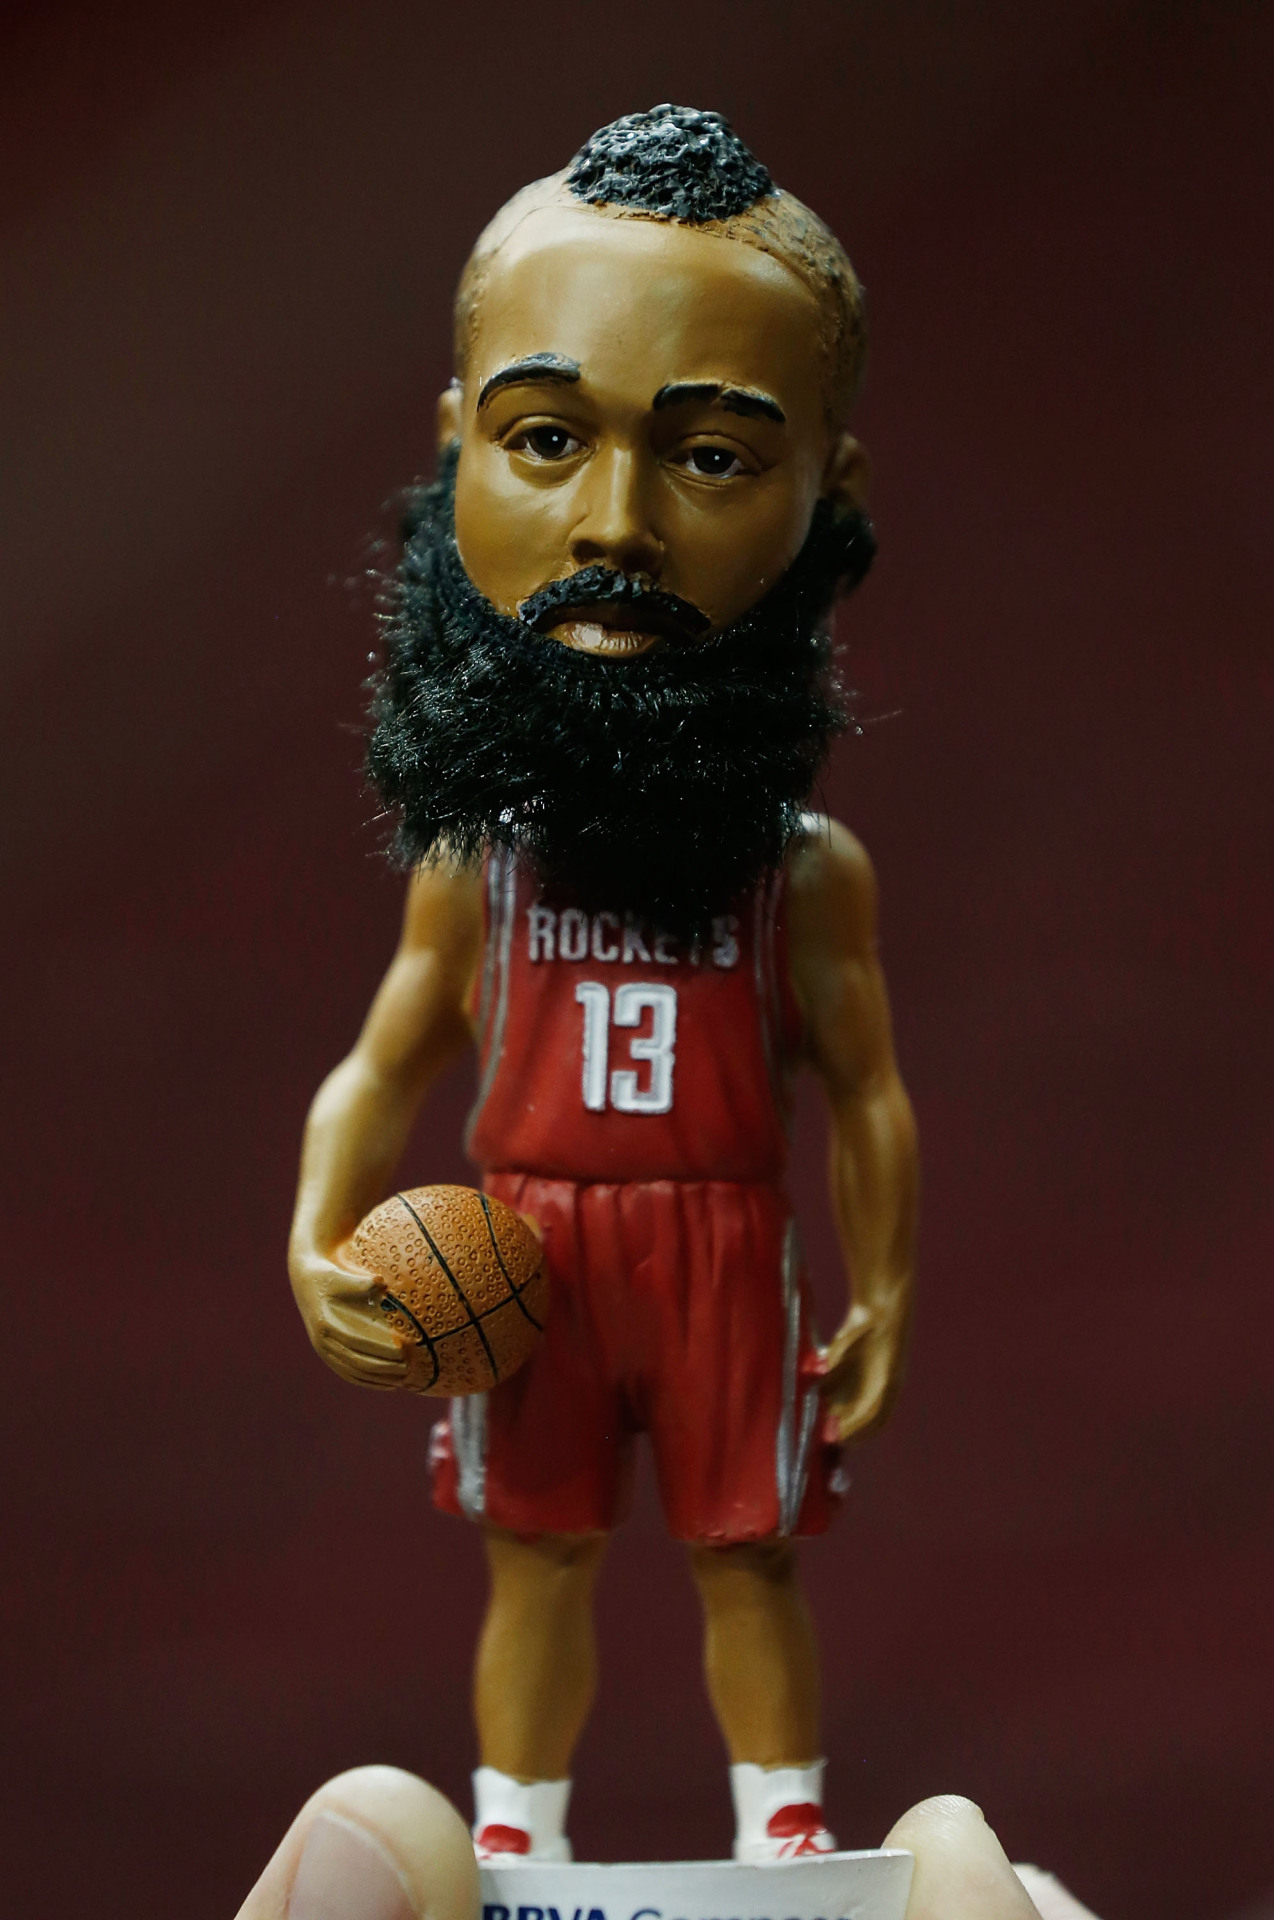 Pic: The James Harden Bobblehead is awesome! #FearTheBeard